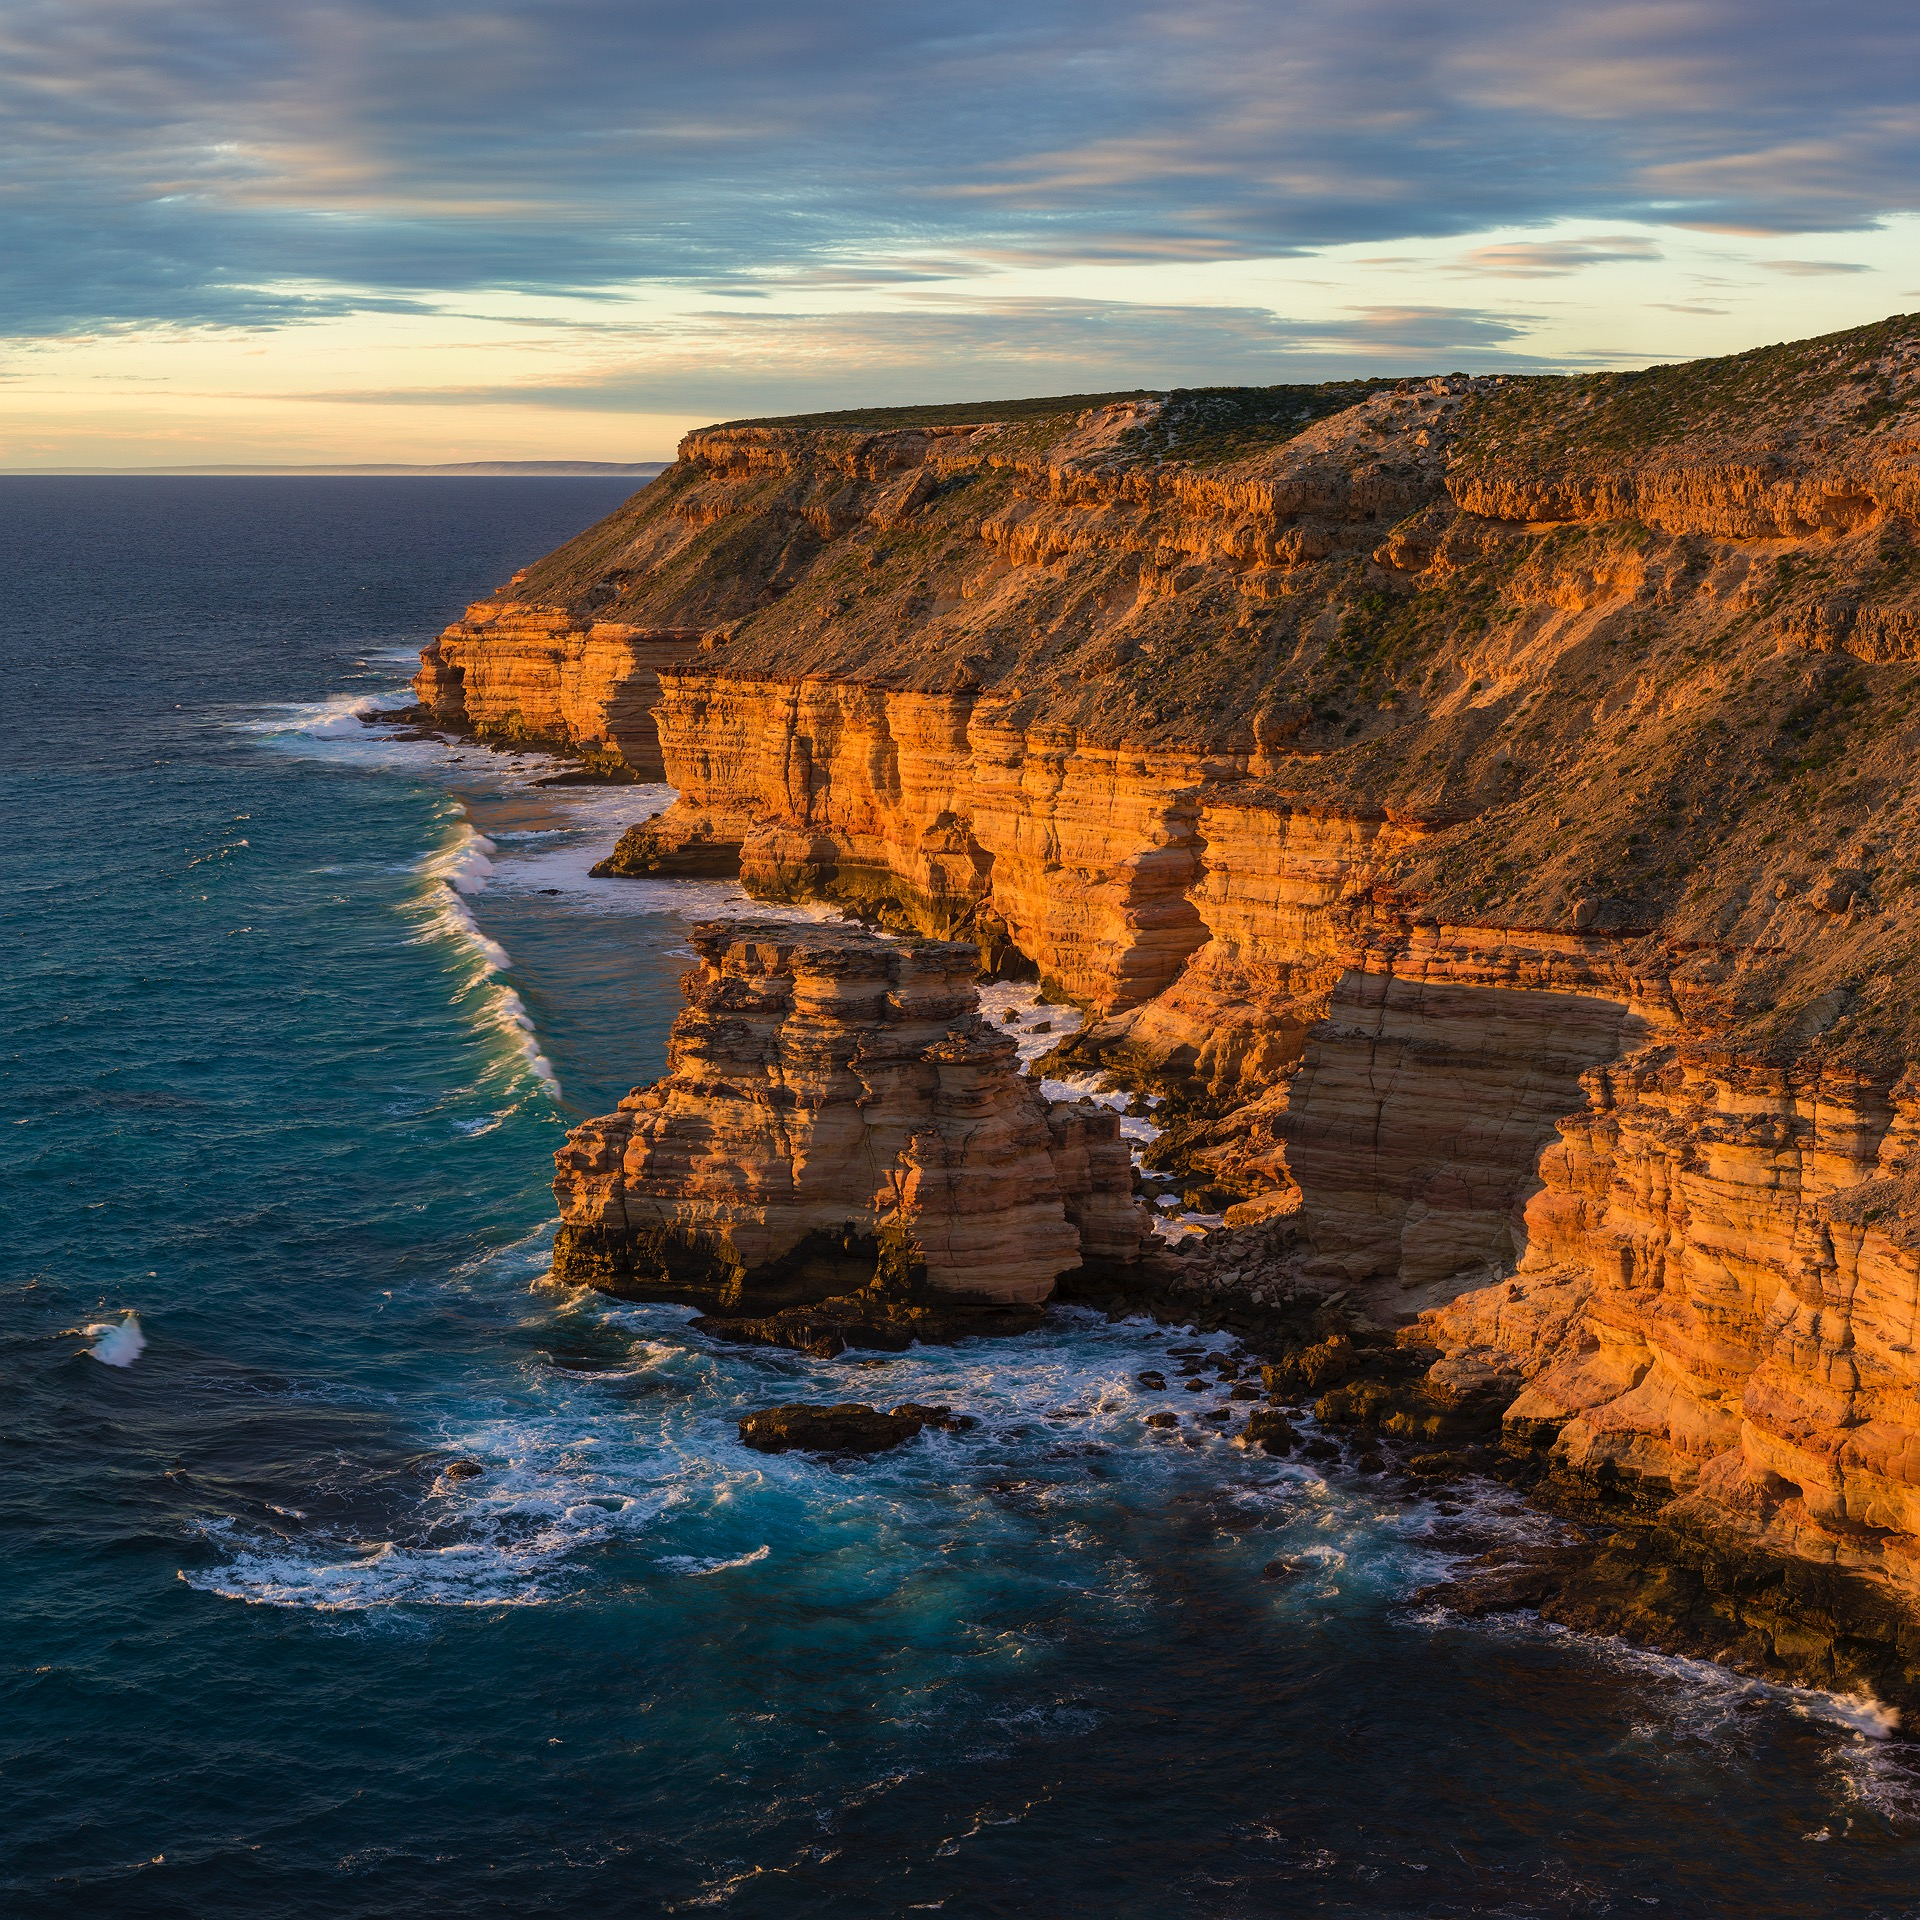 Island_rock_kalbarri_coastal_cliffs